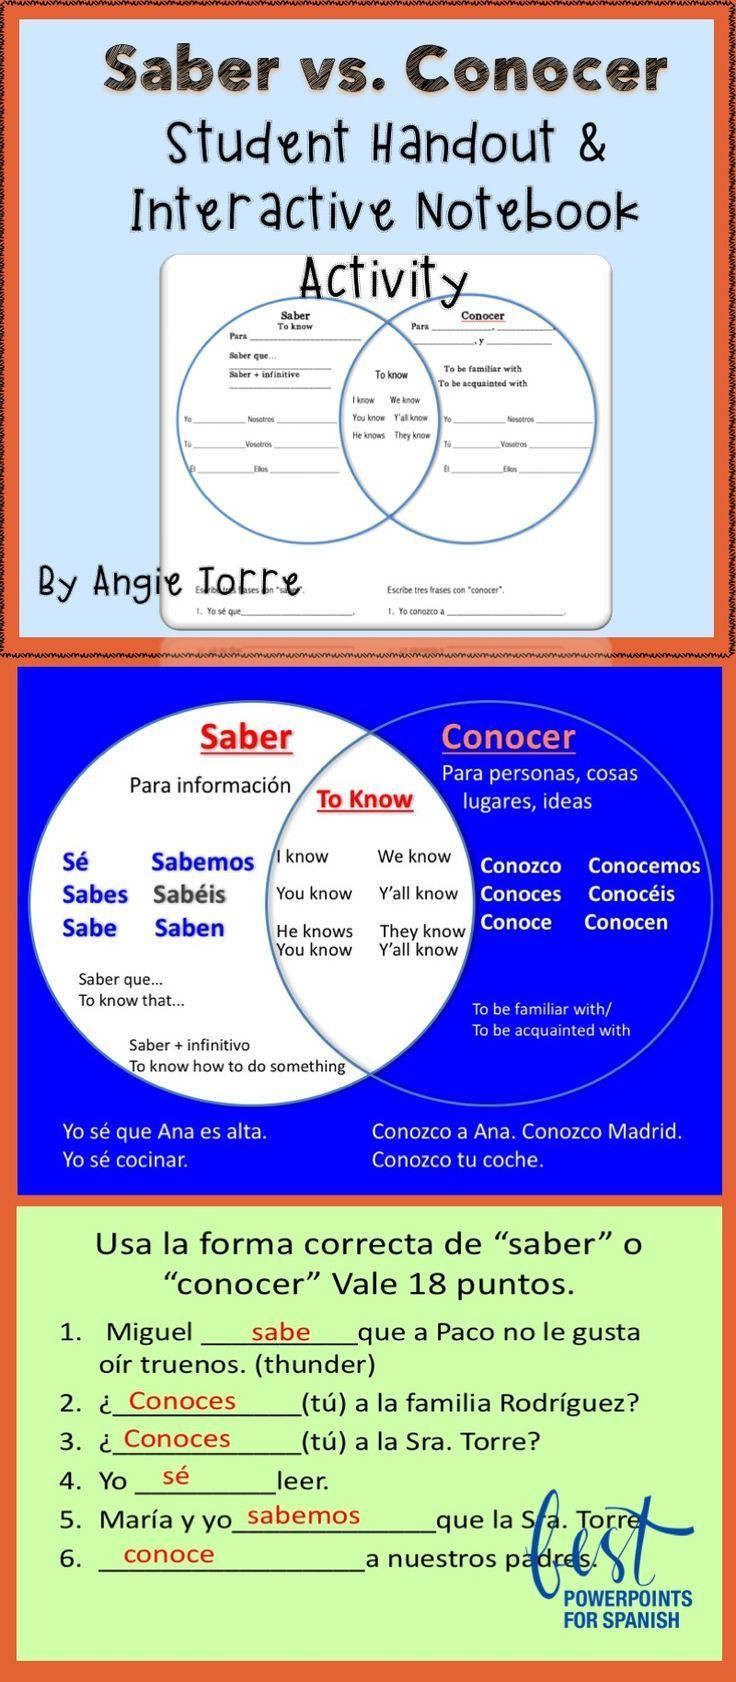 Saber Vs Conocer Worksheet Spanish Saber and Conocer Interactive Notebook Activity and